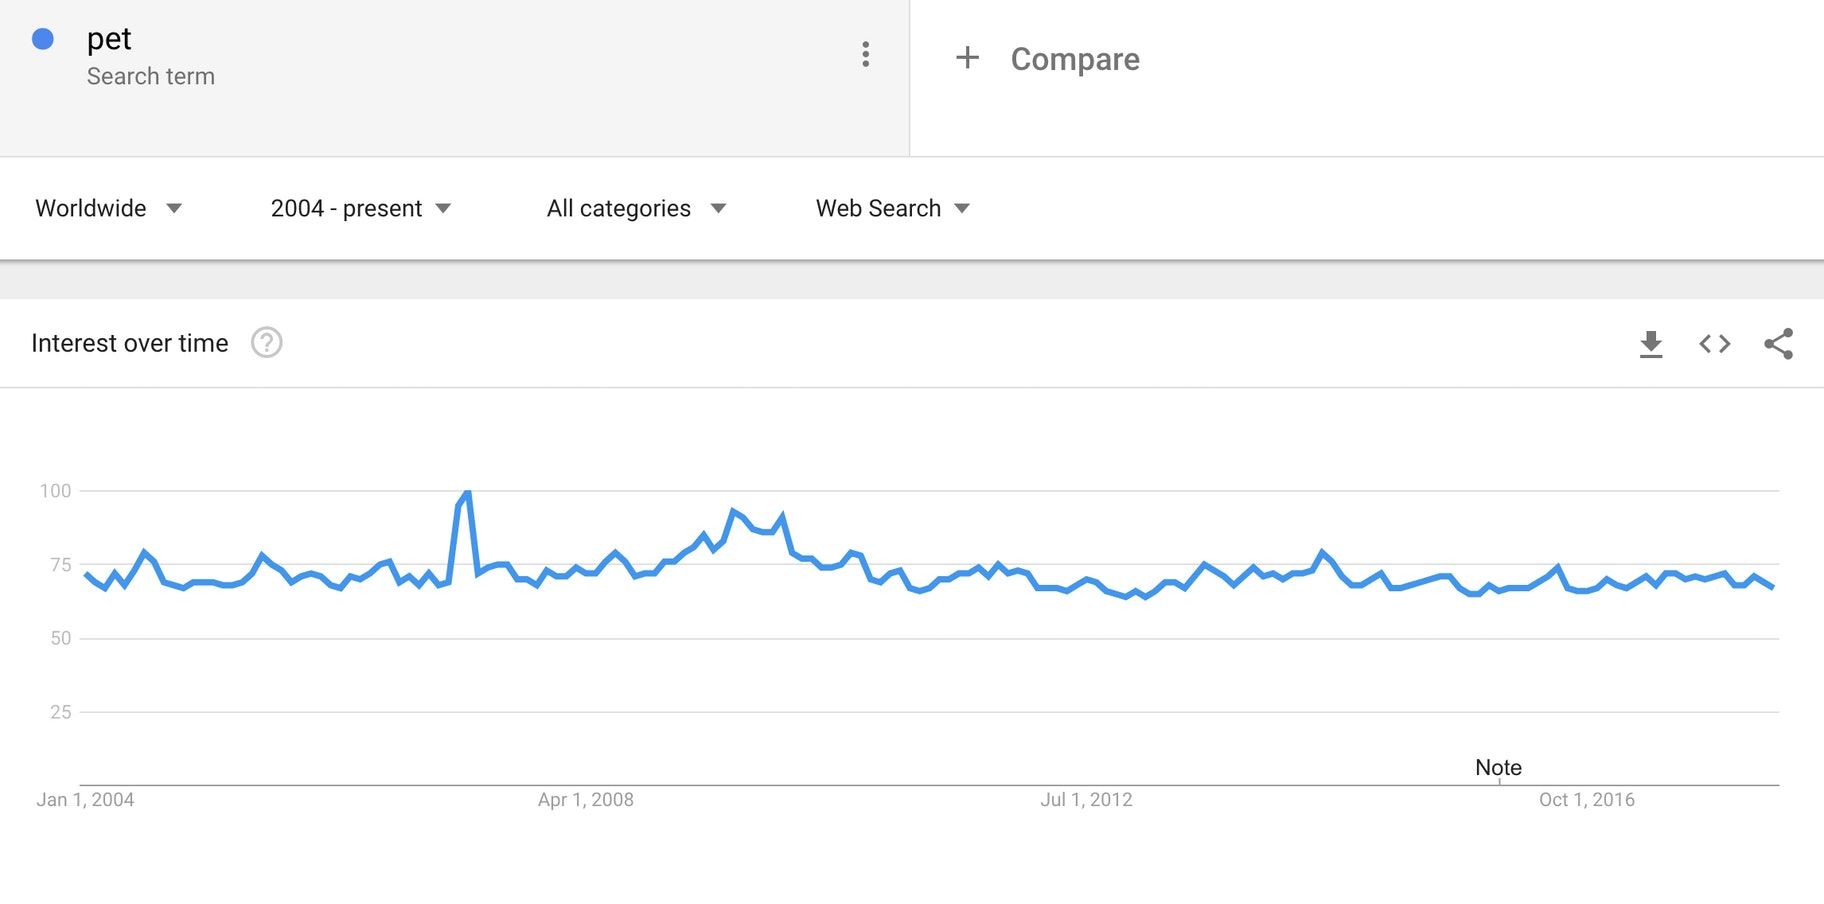 Pet Google Trends